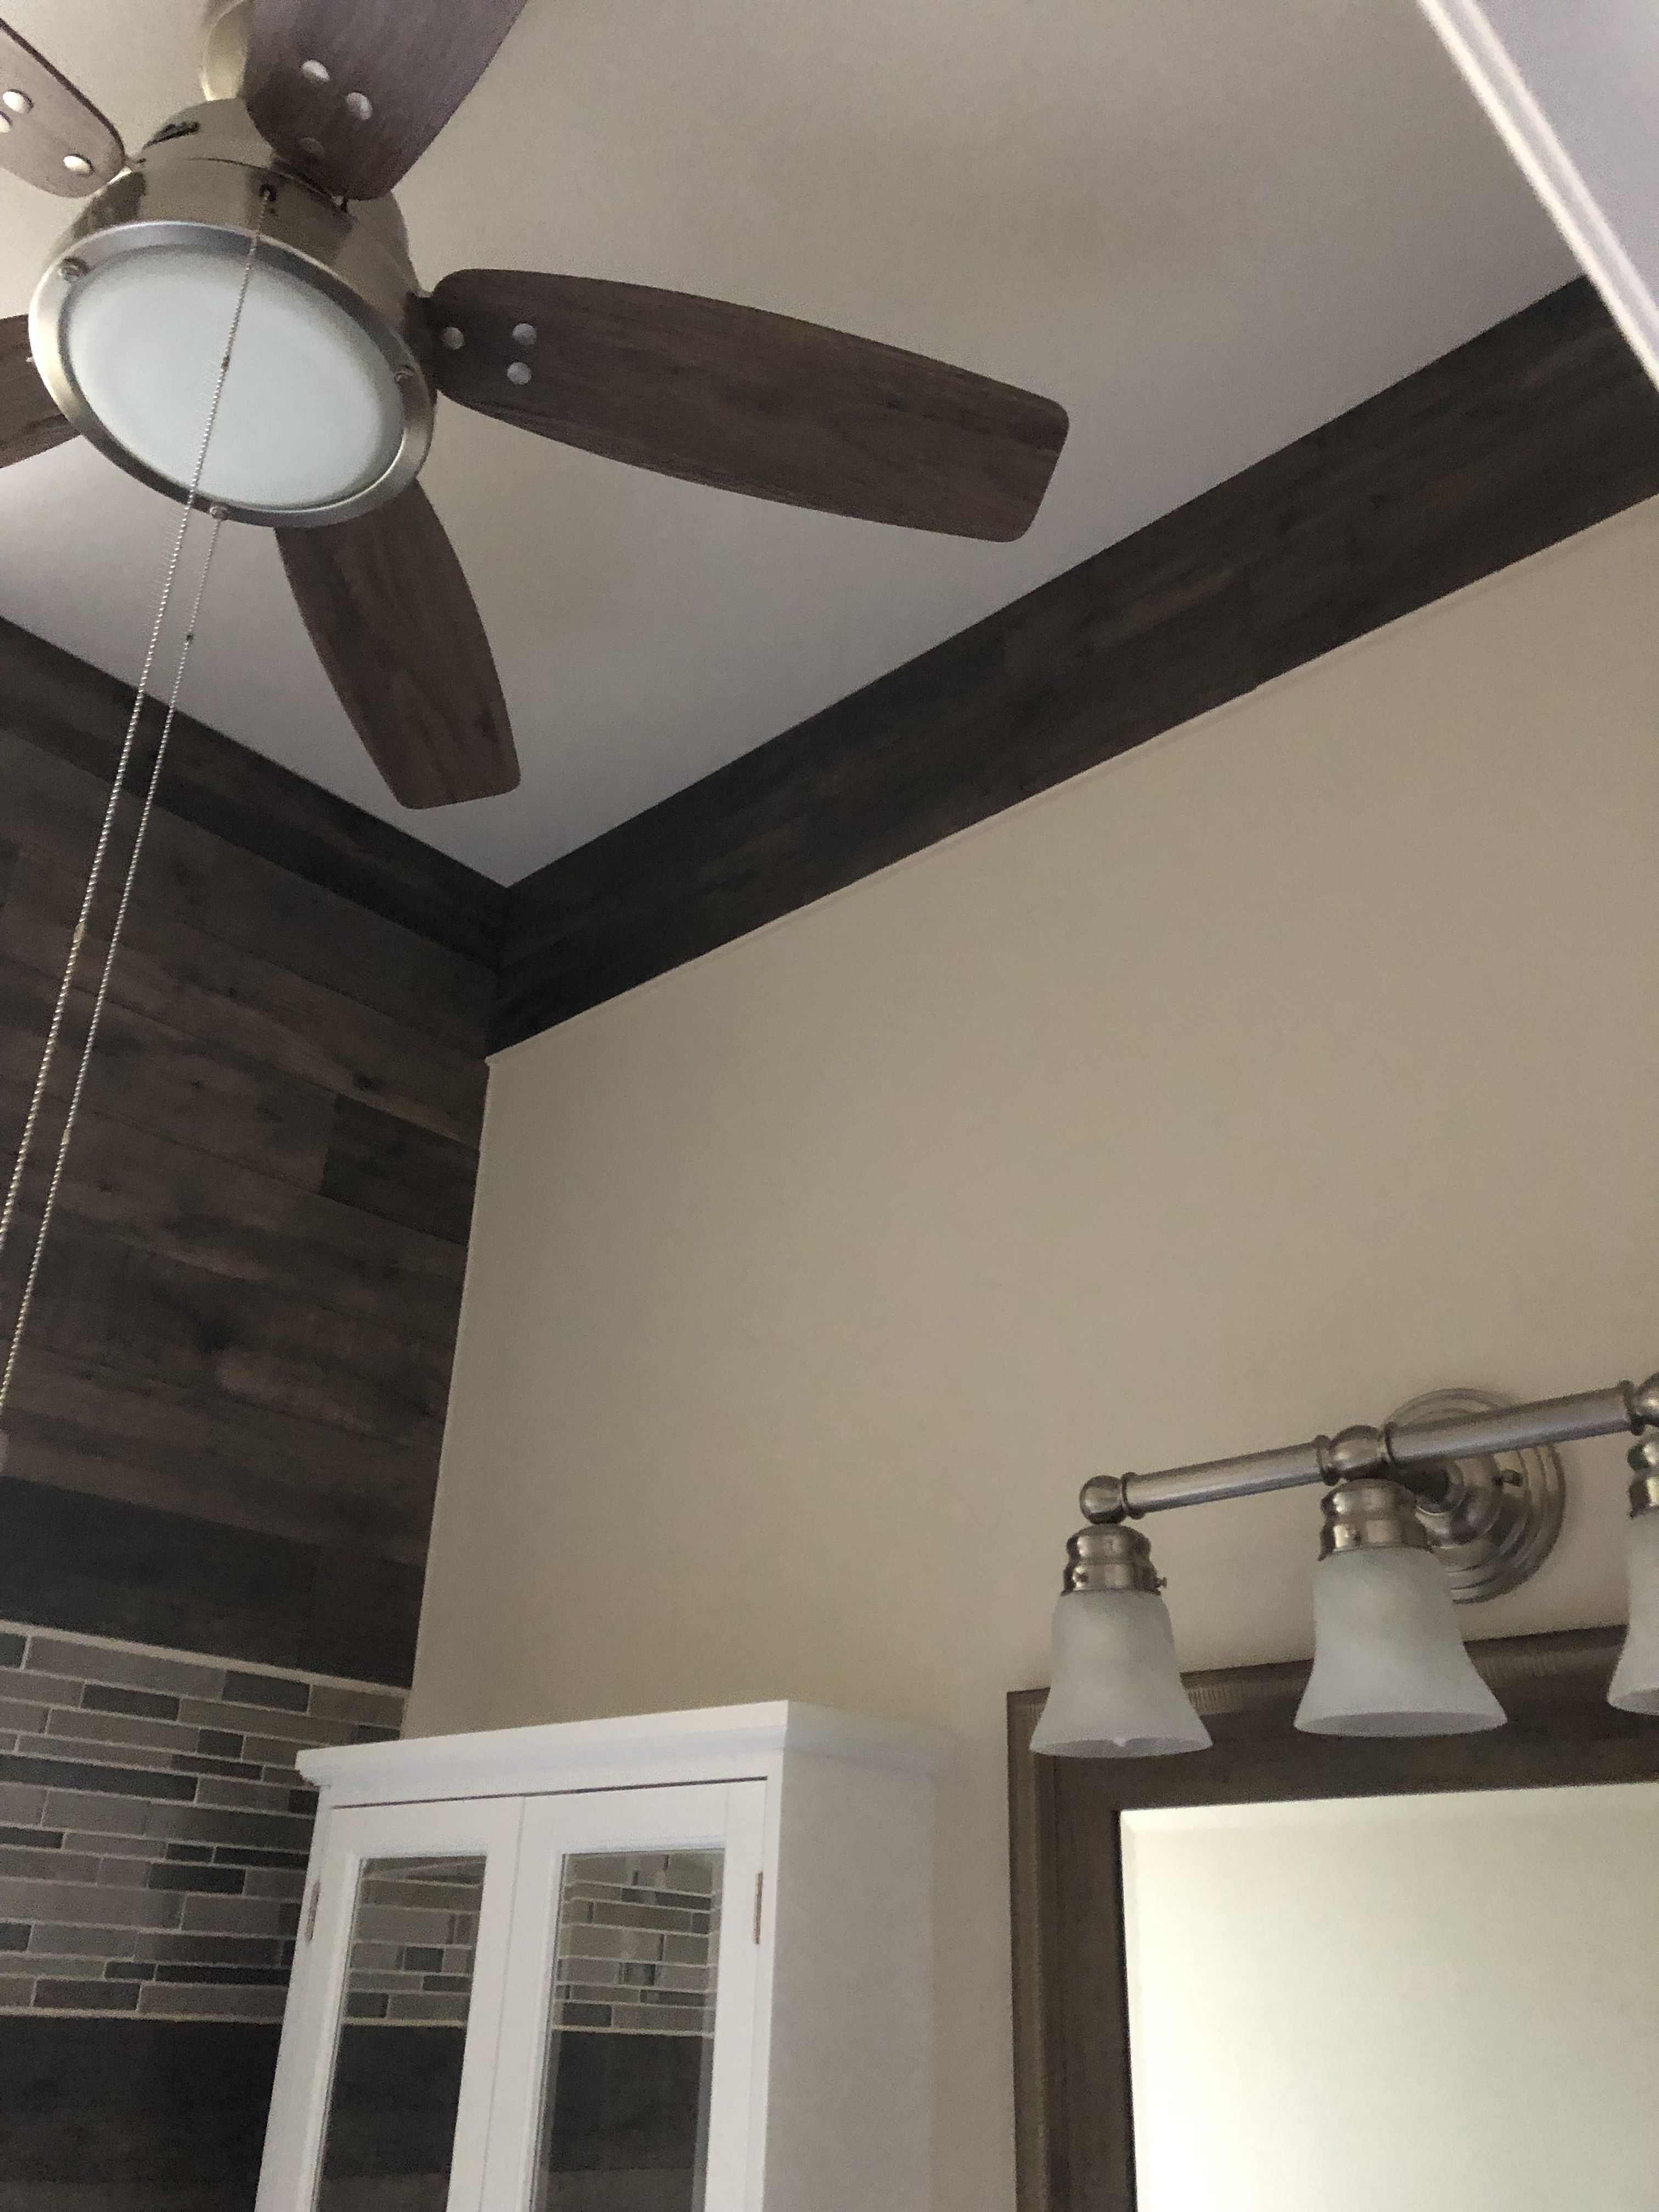 Yes We Have Fans In Both Our Bathrooms Bathroom Renovation Guest Bathroom Ceiling Lights